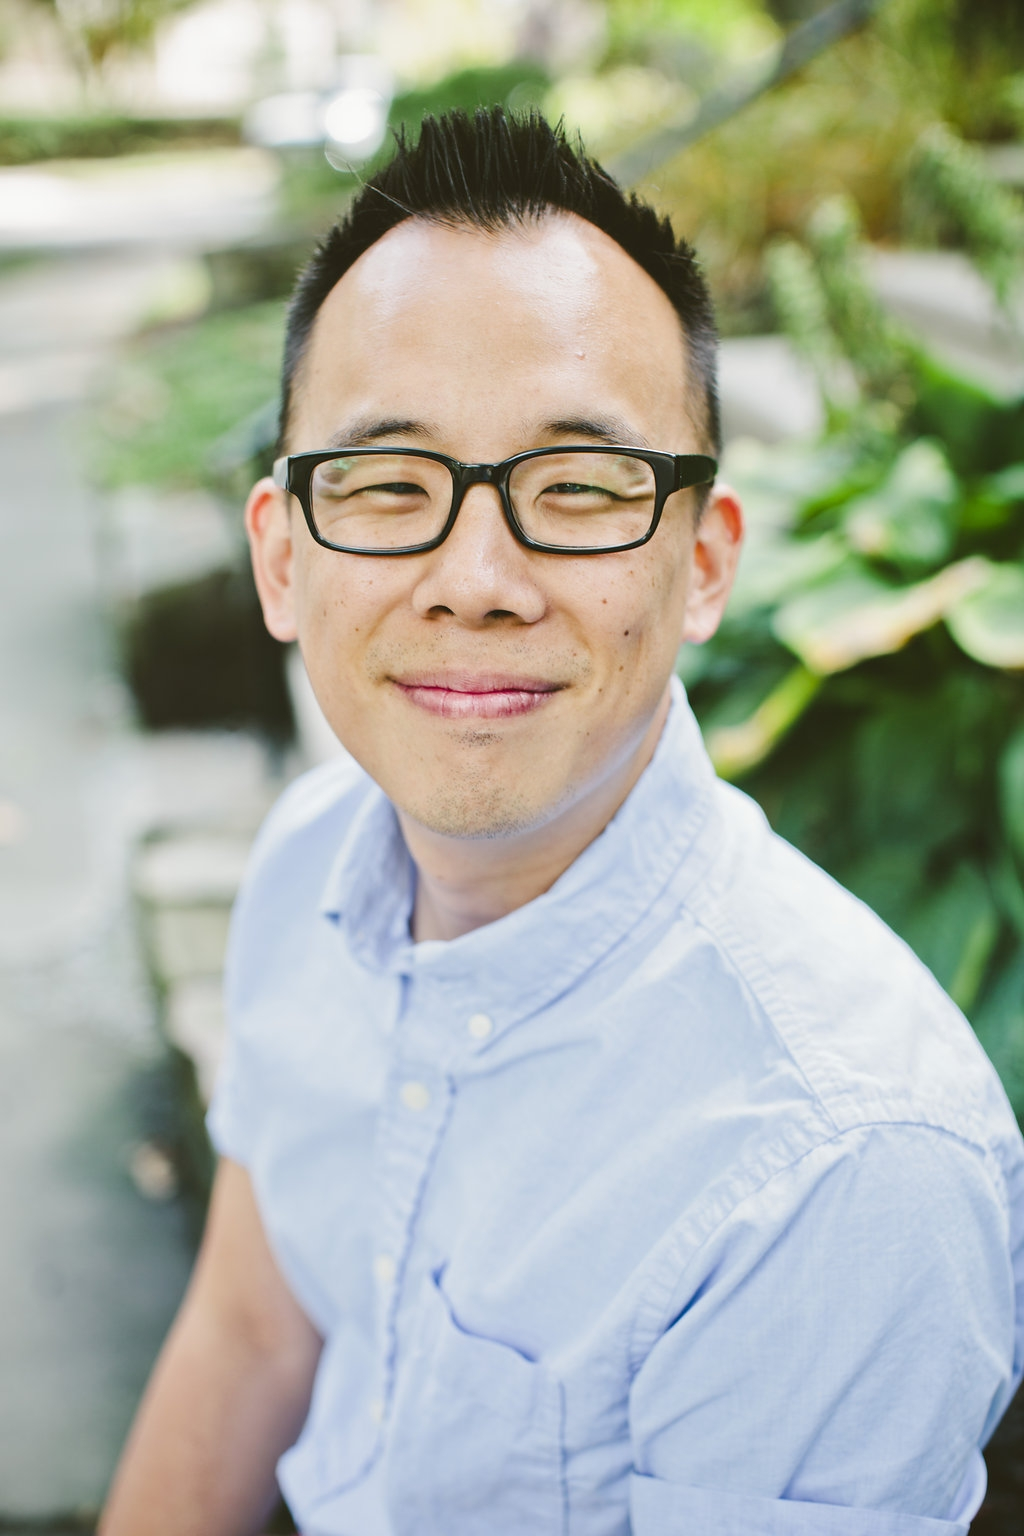 Mike Hong,Pastor of Worship AND Mission   As pastor of worship and mission, Mike oversees the discipleship of the church through the Sunday worship gatherings and leading musicians in the worship ministry. He also facilitates partnerships with outside organizations and ministries, which includes anything from local neighborhood non-profits to overseas ministries in other countries.  A resident of the Boston area since 1999, Mike spent several years working with InterVarsity Christian Fellowship at Boston College before enrolling at Gordon Conwell Theological Seminary in 2008 to pursue an M.Div. He joined City on a Hill's staff in the summer of 2011.Mike and his wife Tanya have two children,Alina and Mark.  Email: mike@coahchurch.org Twitter:  WMHong